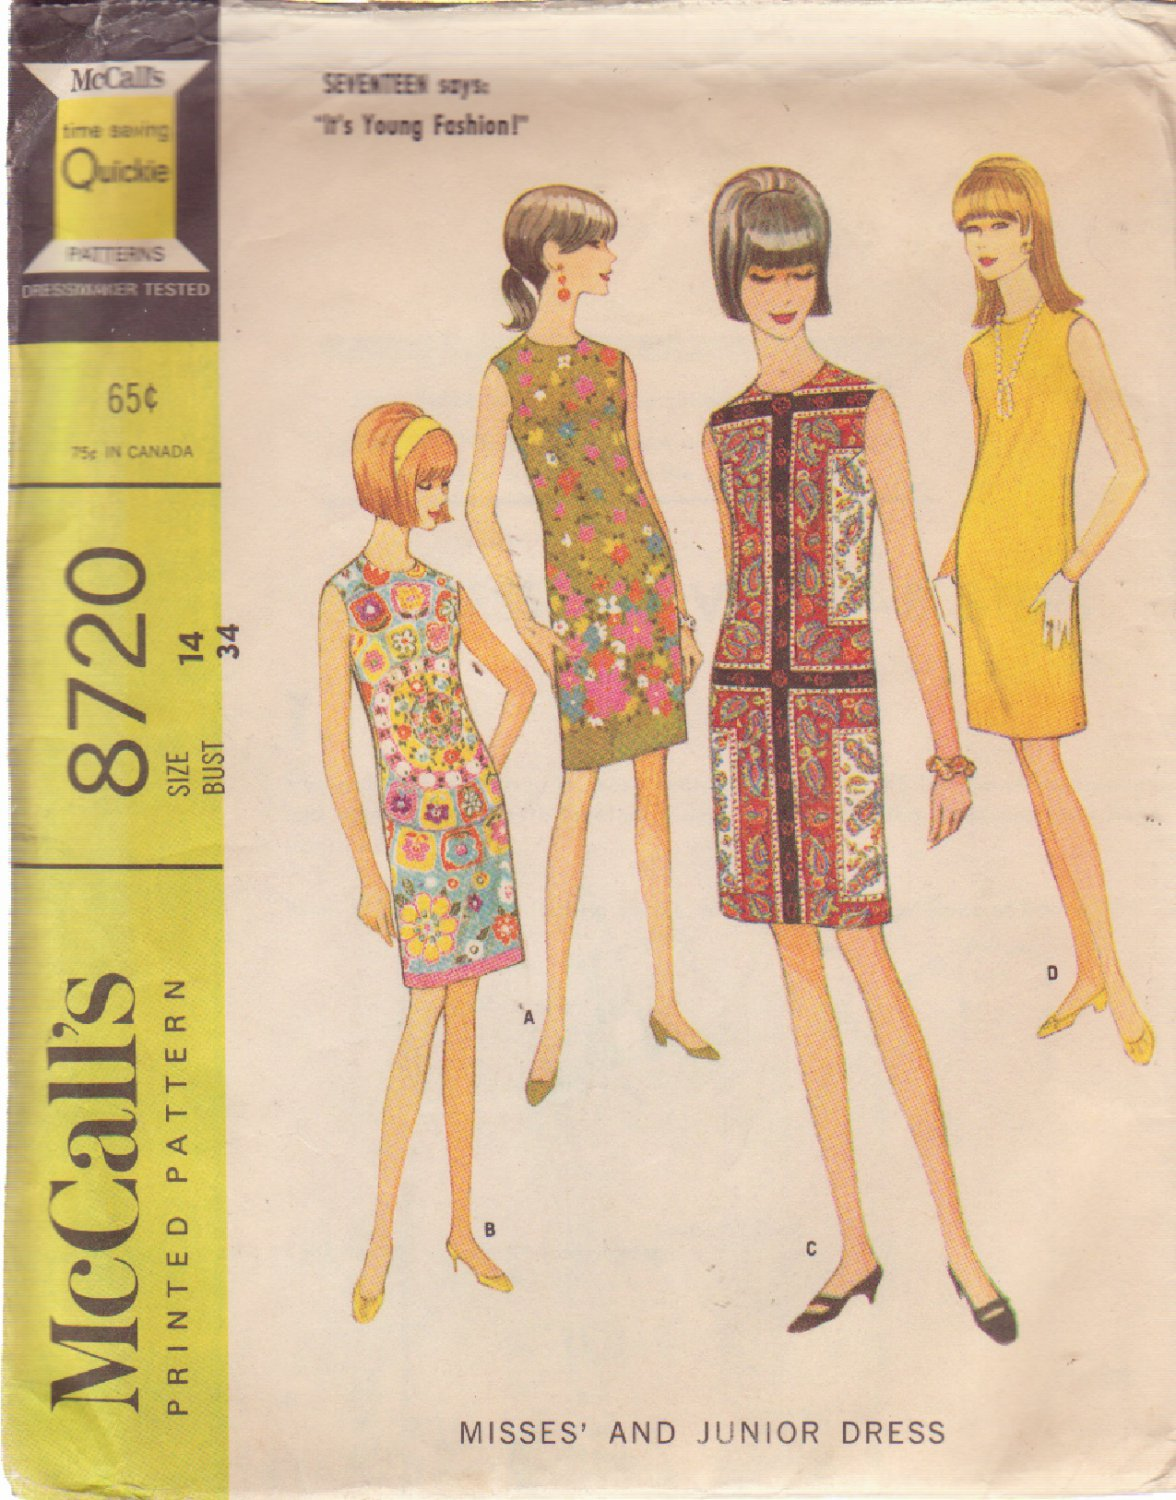 McCALL'S PATTERN 8720 SIZE 14 DATED 1967 MISSES' DRESS IN 4 STYLES